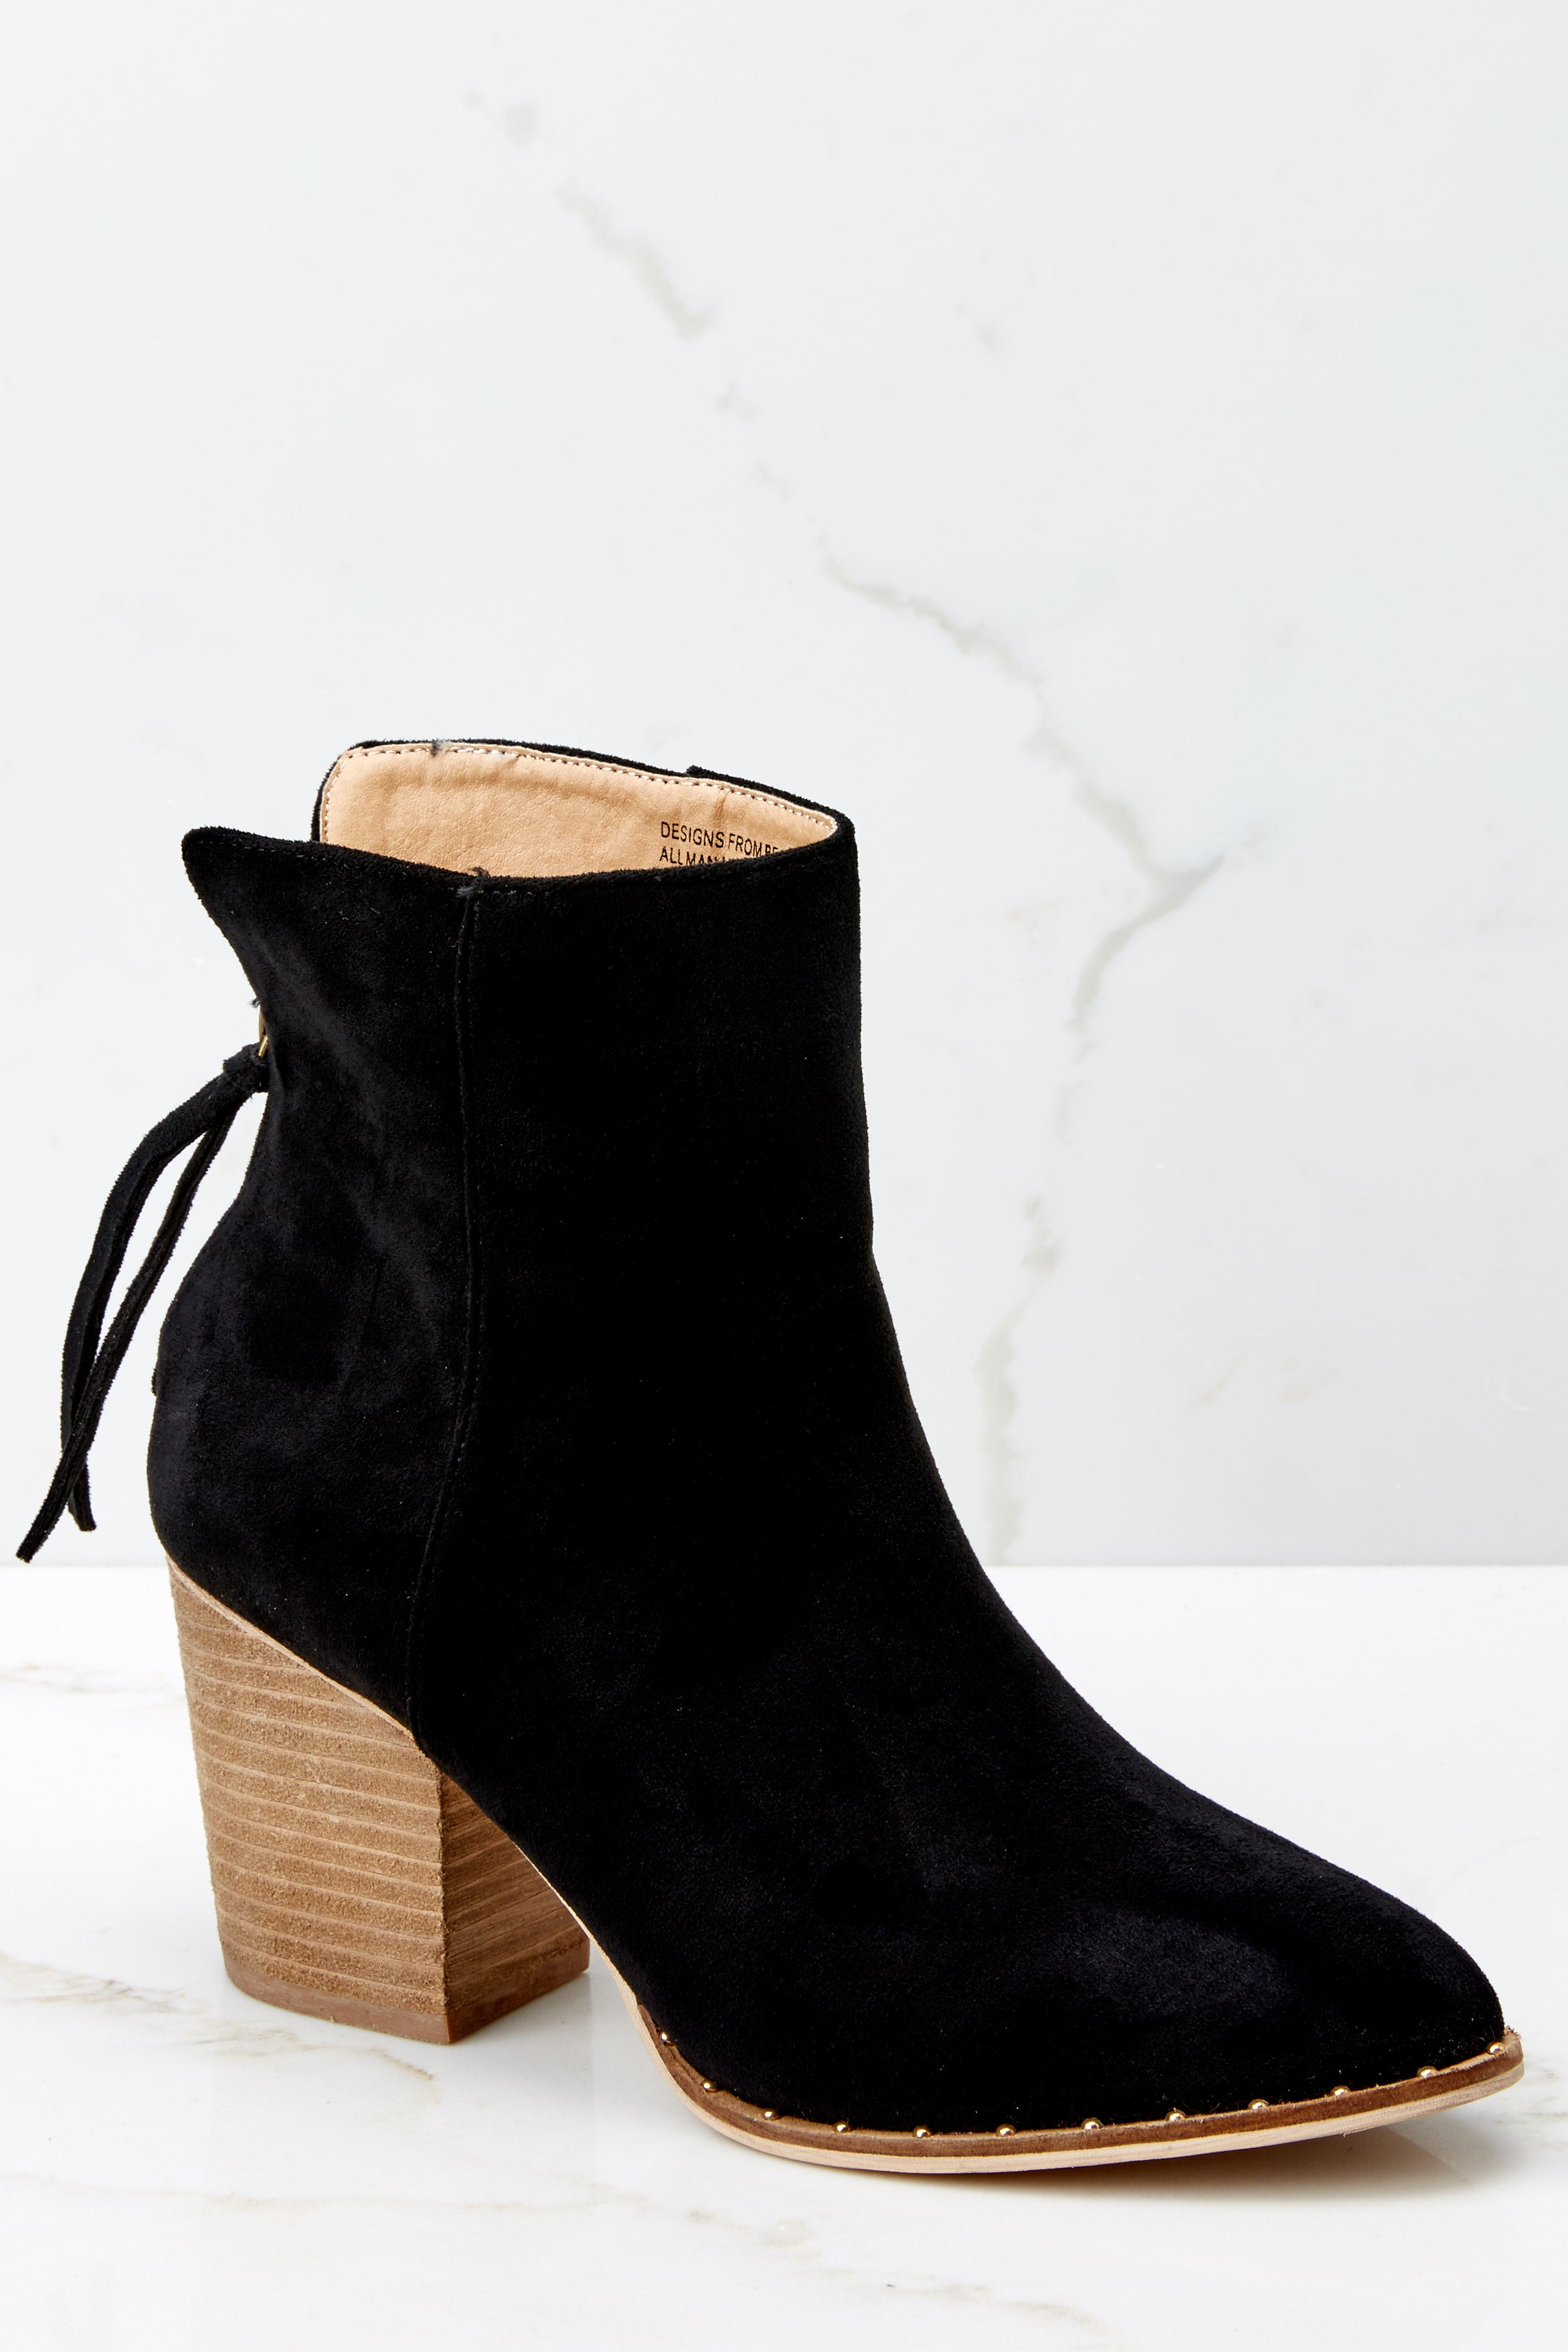 2585ecdc756 Taking These with Me Black High Heel Ankle Boots